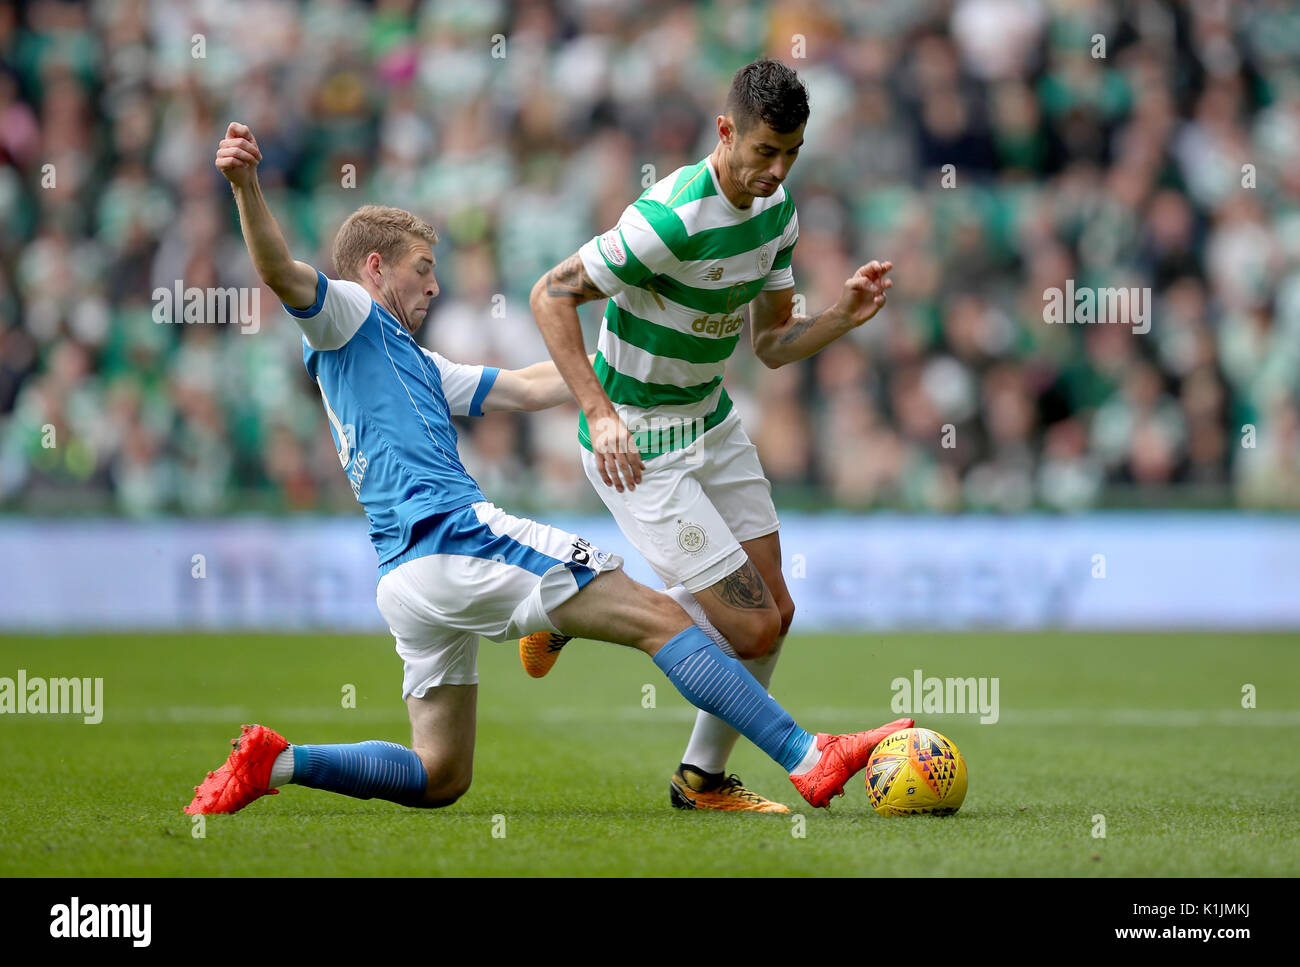 Celtic's Nir Bitton and St Johnstone's David Wotherspoon battle the ball during the Ladbrokes Scottish Premiership match at Celtic Park, Glasgow. - Stock Image